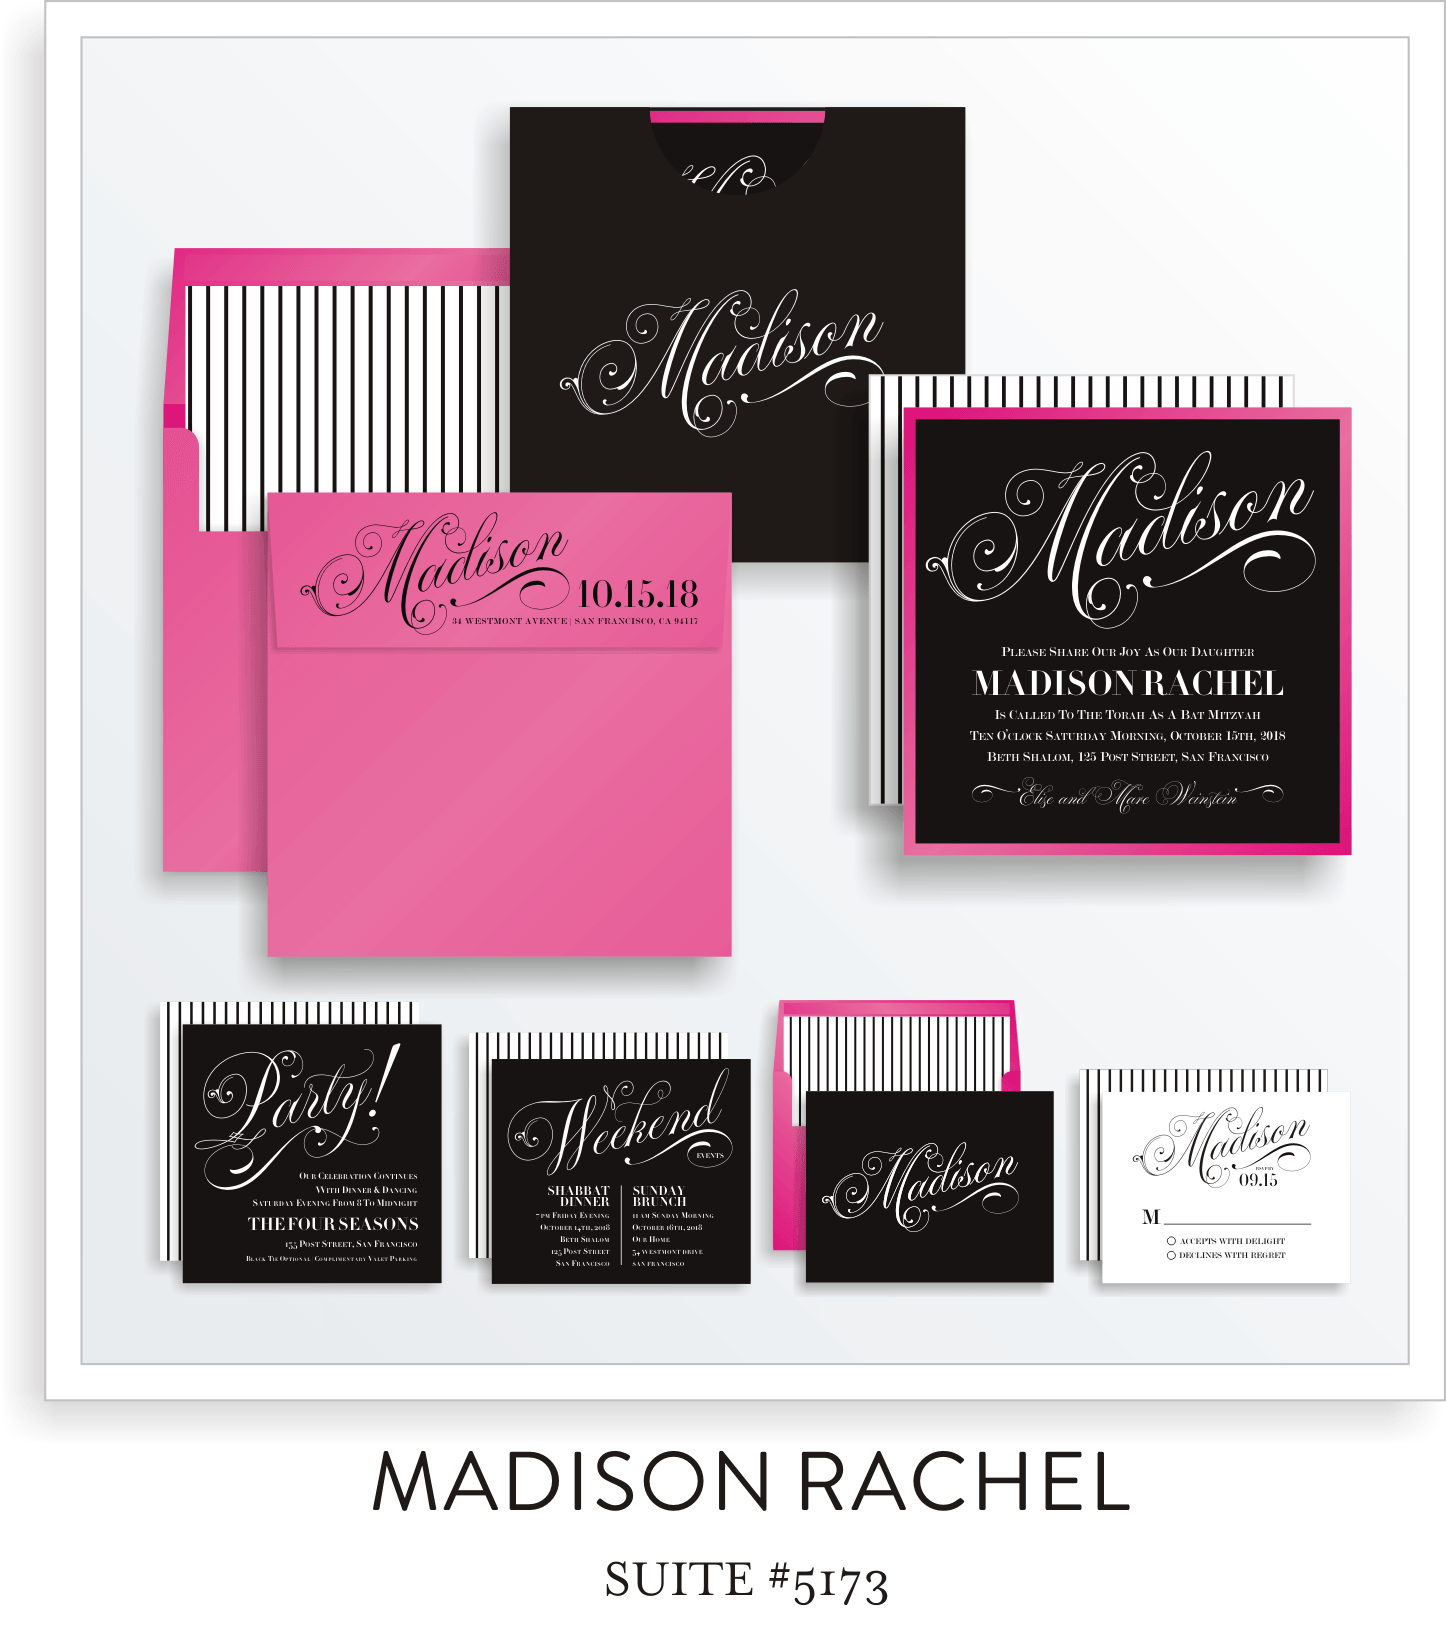 Copy of Bat Mitzvah Invitation Suite 5173 - Madison Rachel